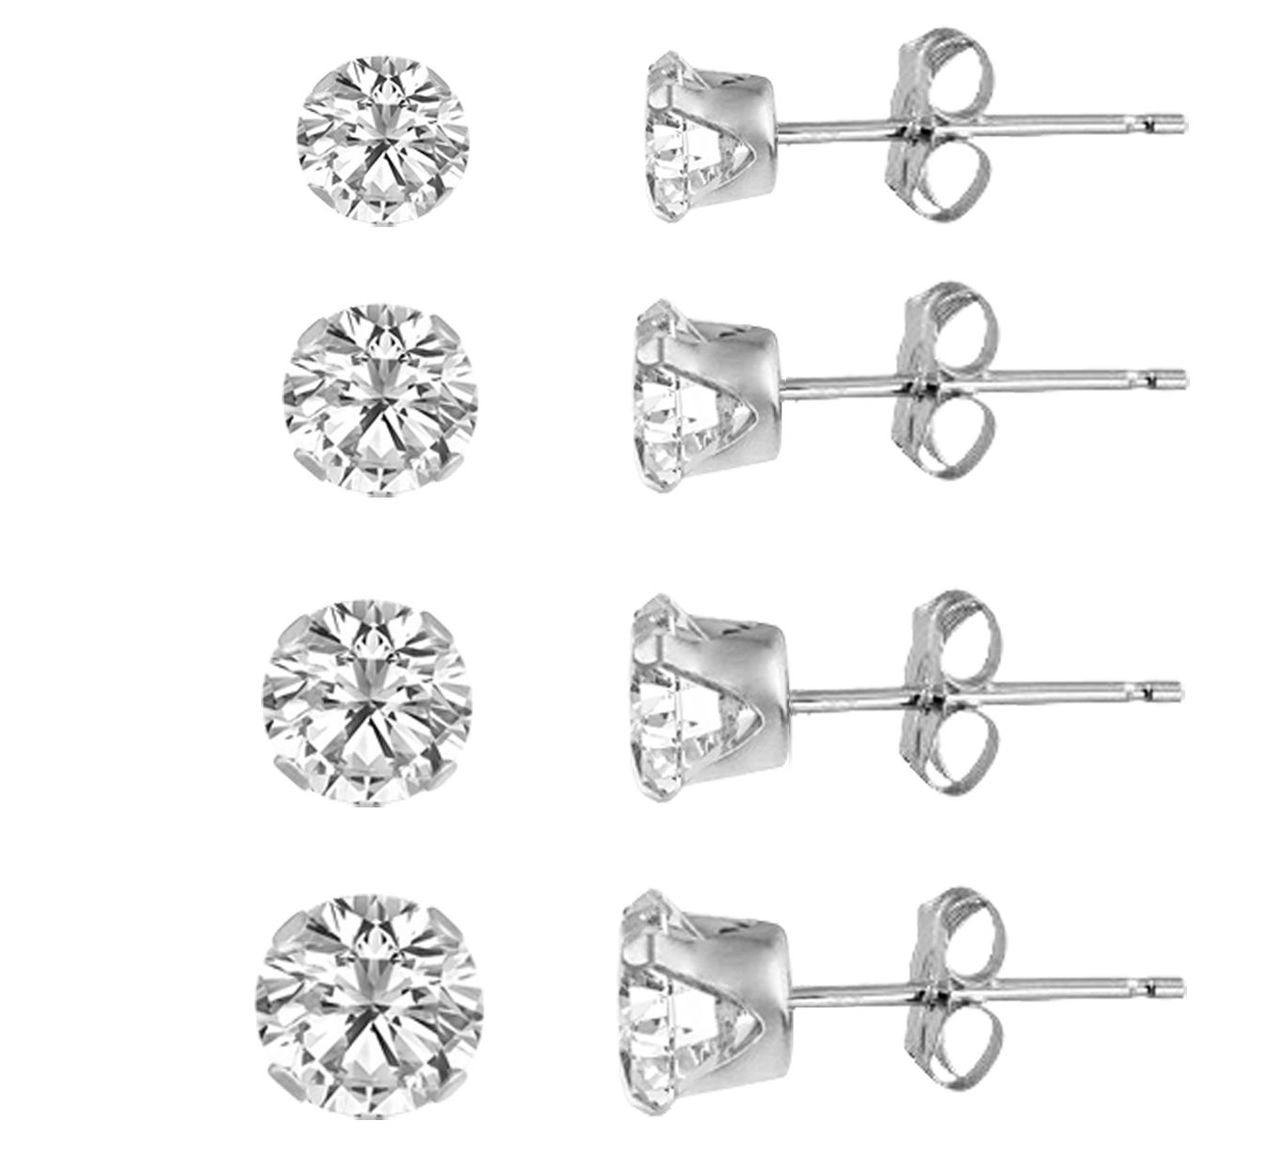 557b12e97 KEZEF Sterling Silver 925 Round Clear Cubic Zirconia Stud Earring set (4  Pairs) 3mm, 4mm, 5mm, ...